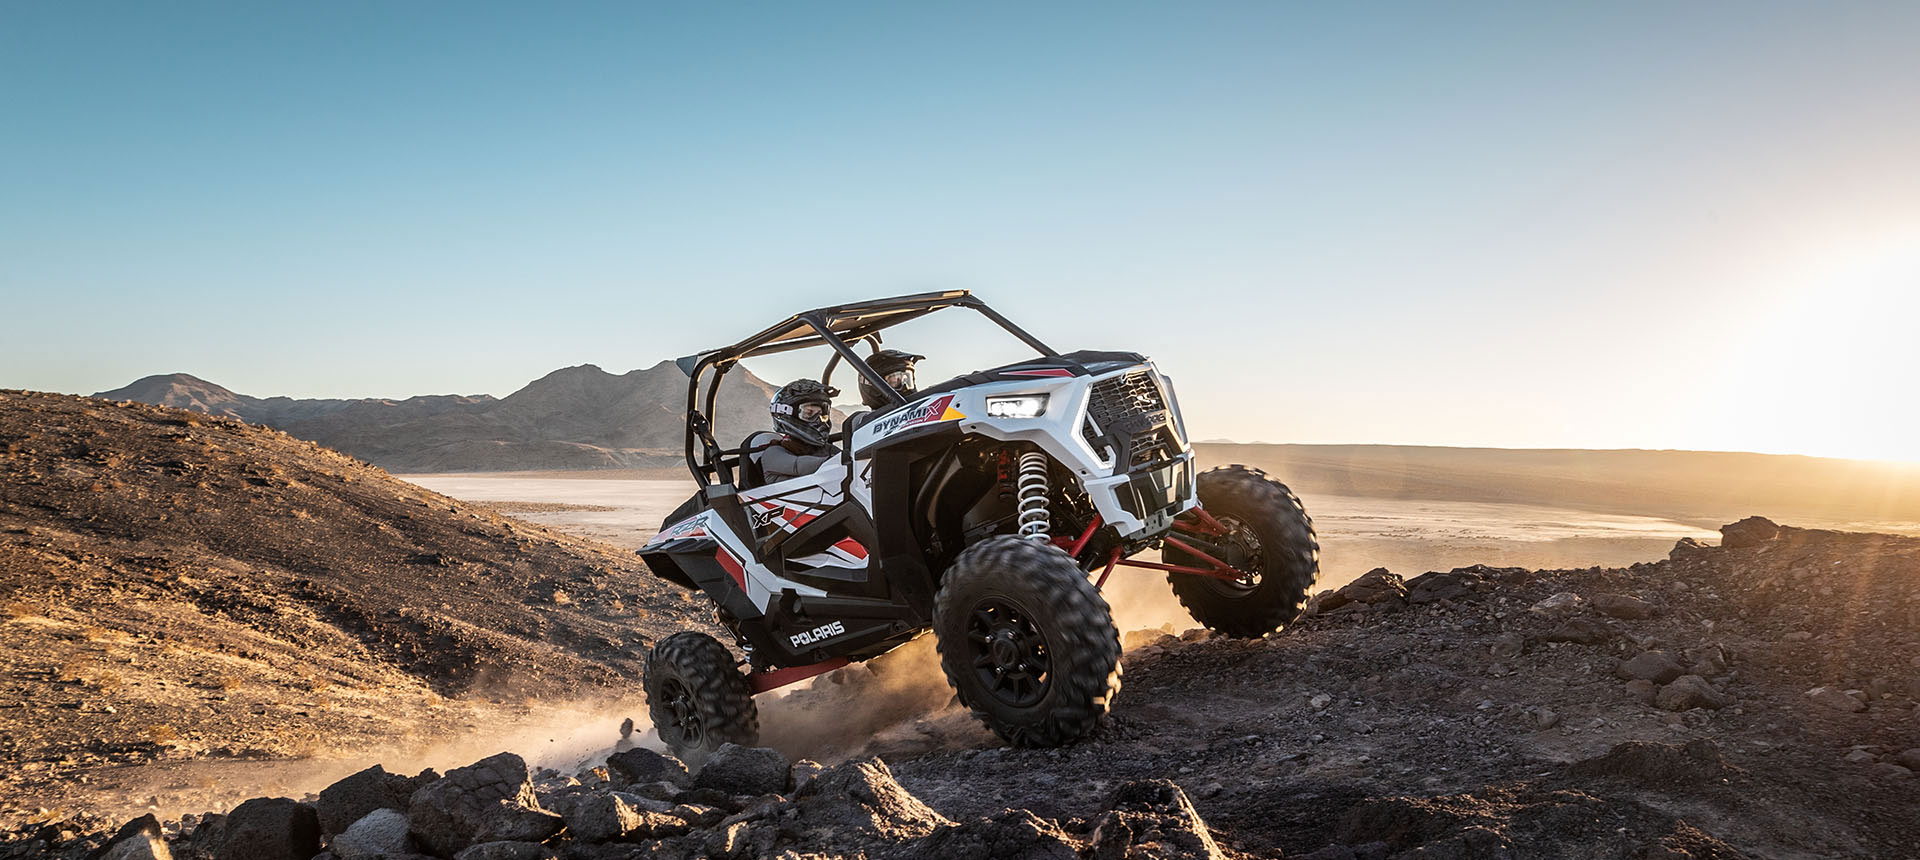 2019 Polaris RZR XP 1000 in Caroline, Wisconsin - Photo 4